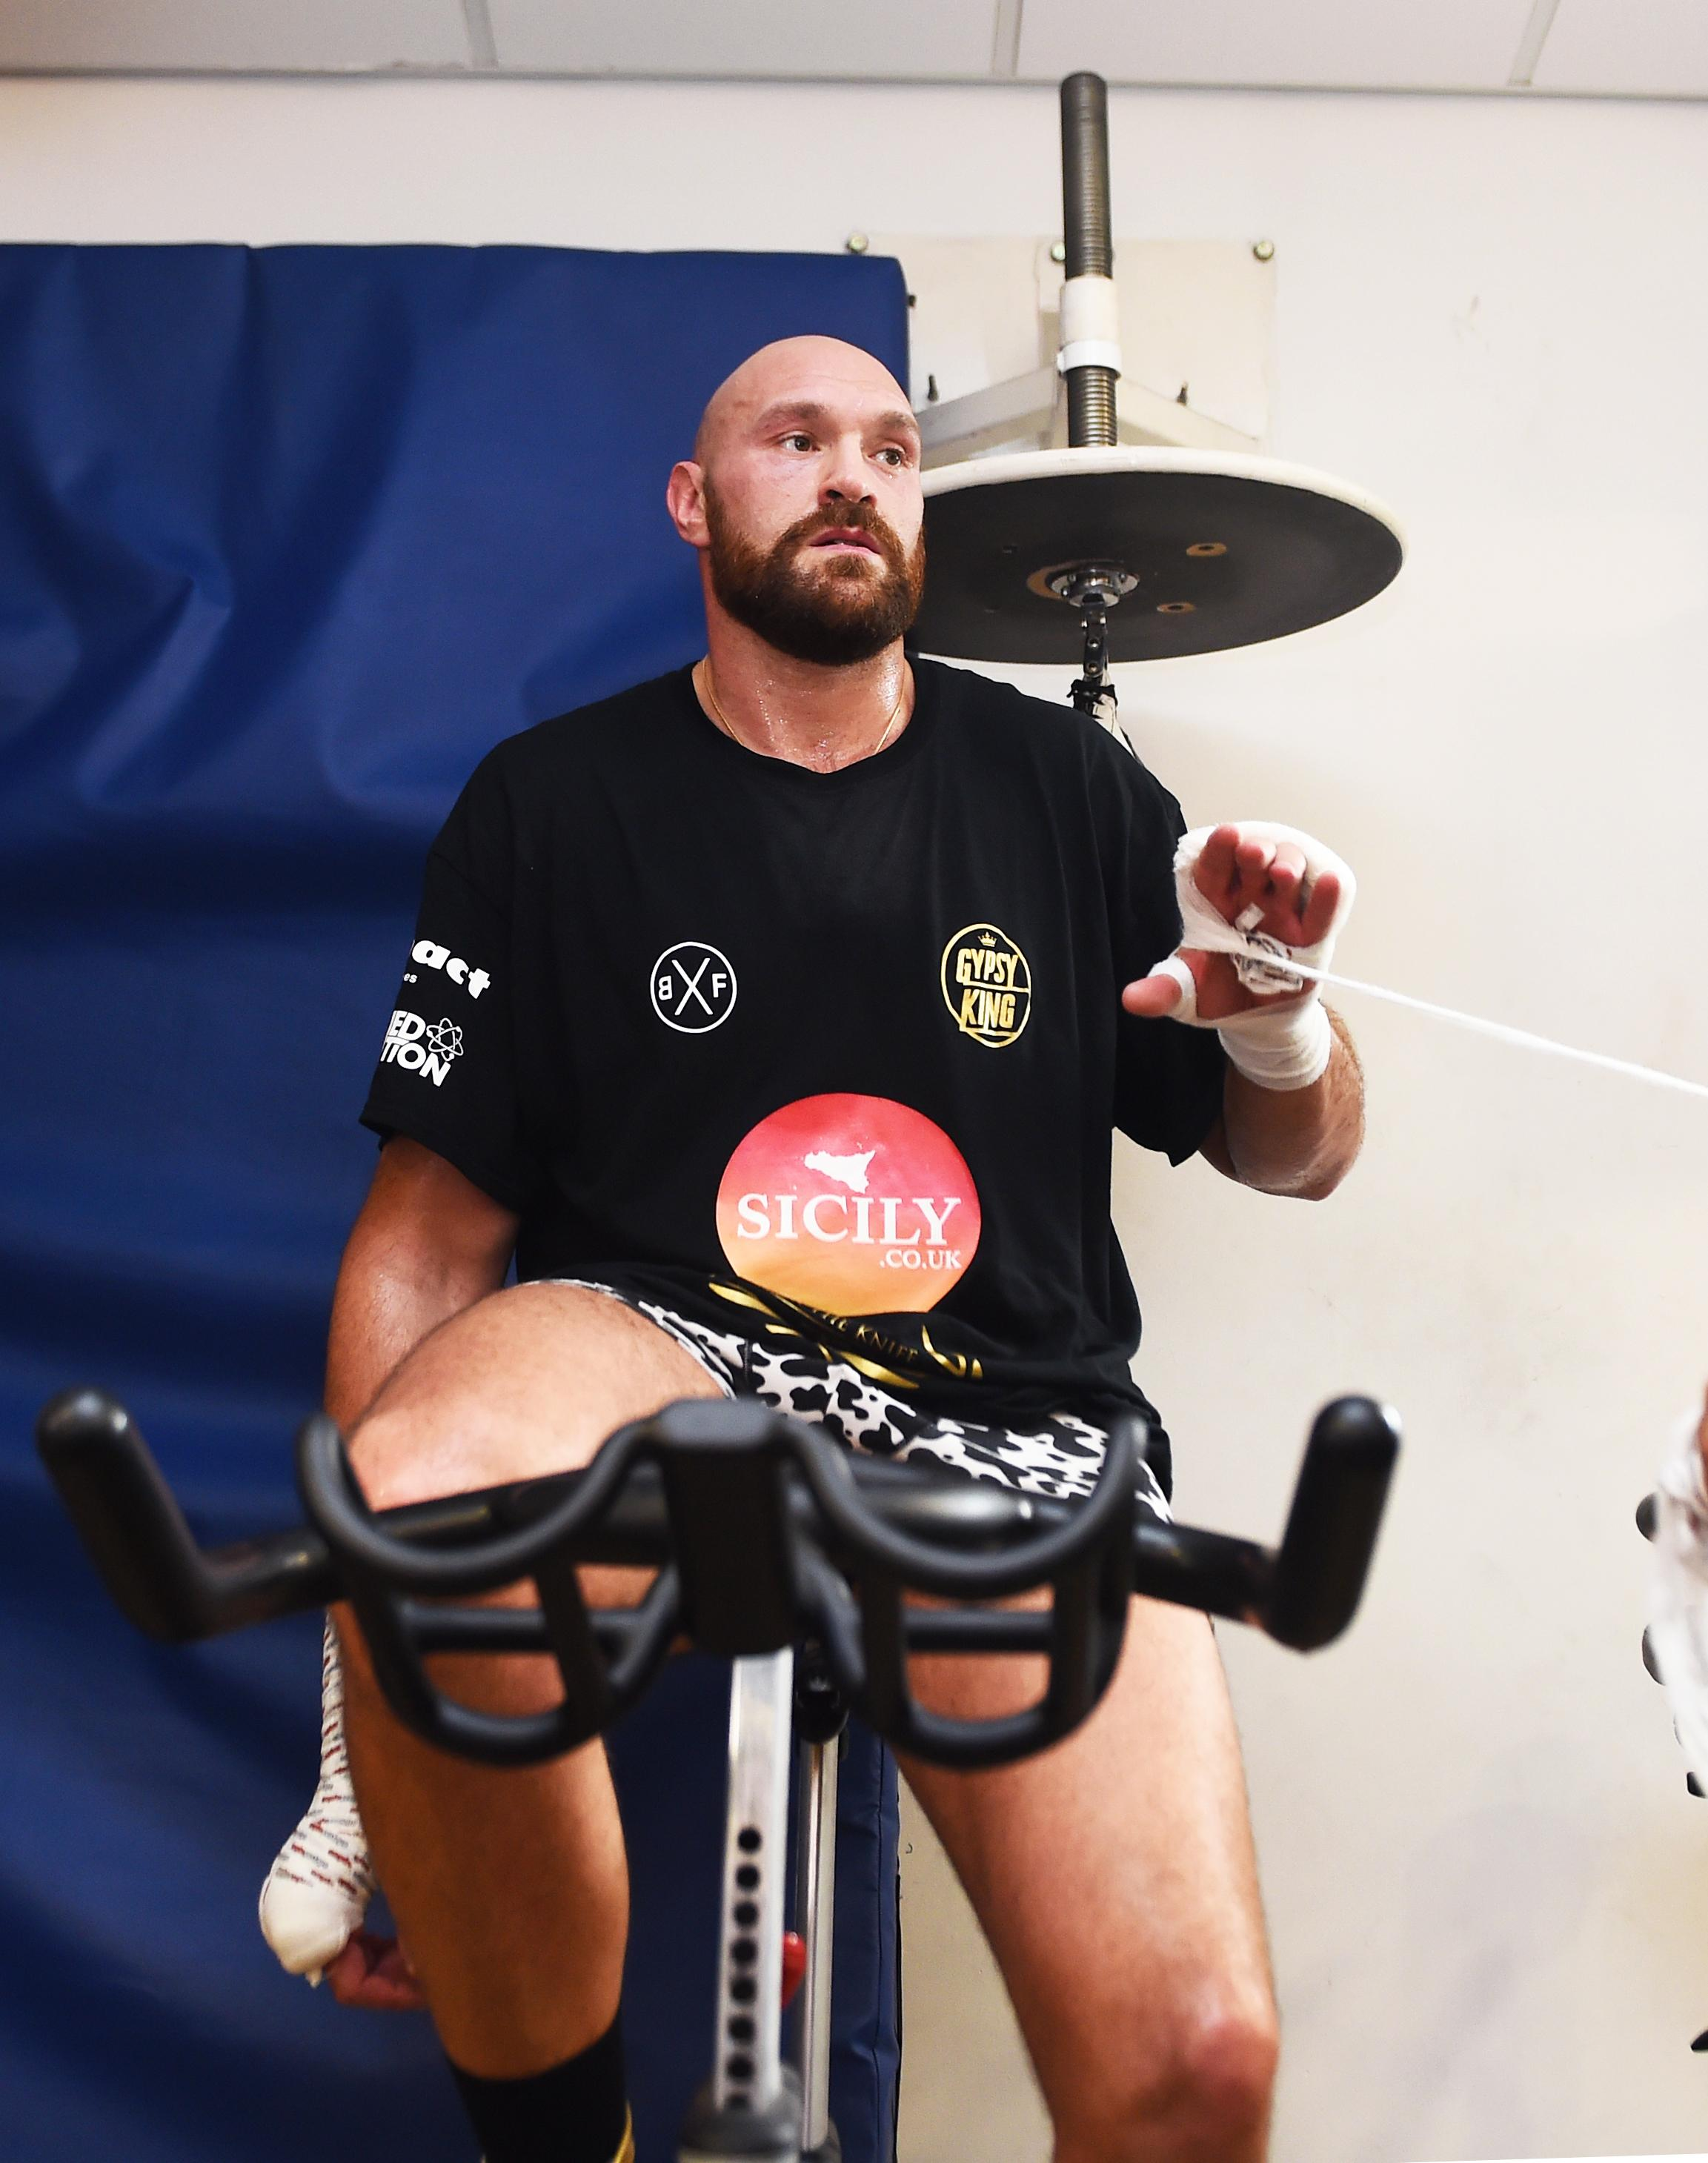 Tyson Fury reacted angrily to Deontay Wilder's comments